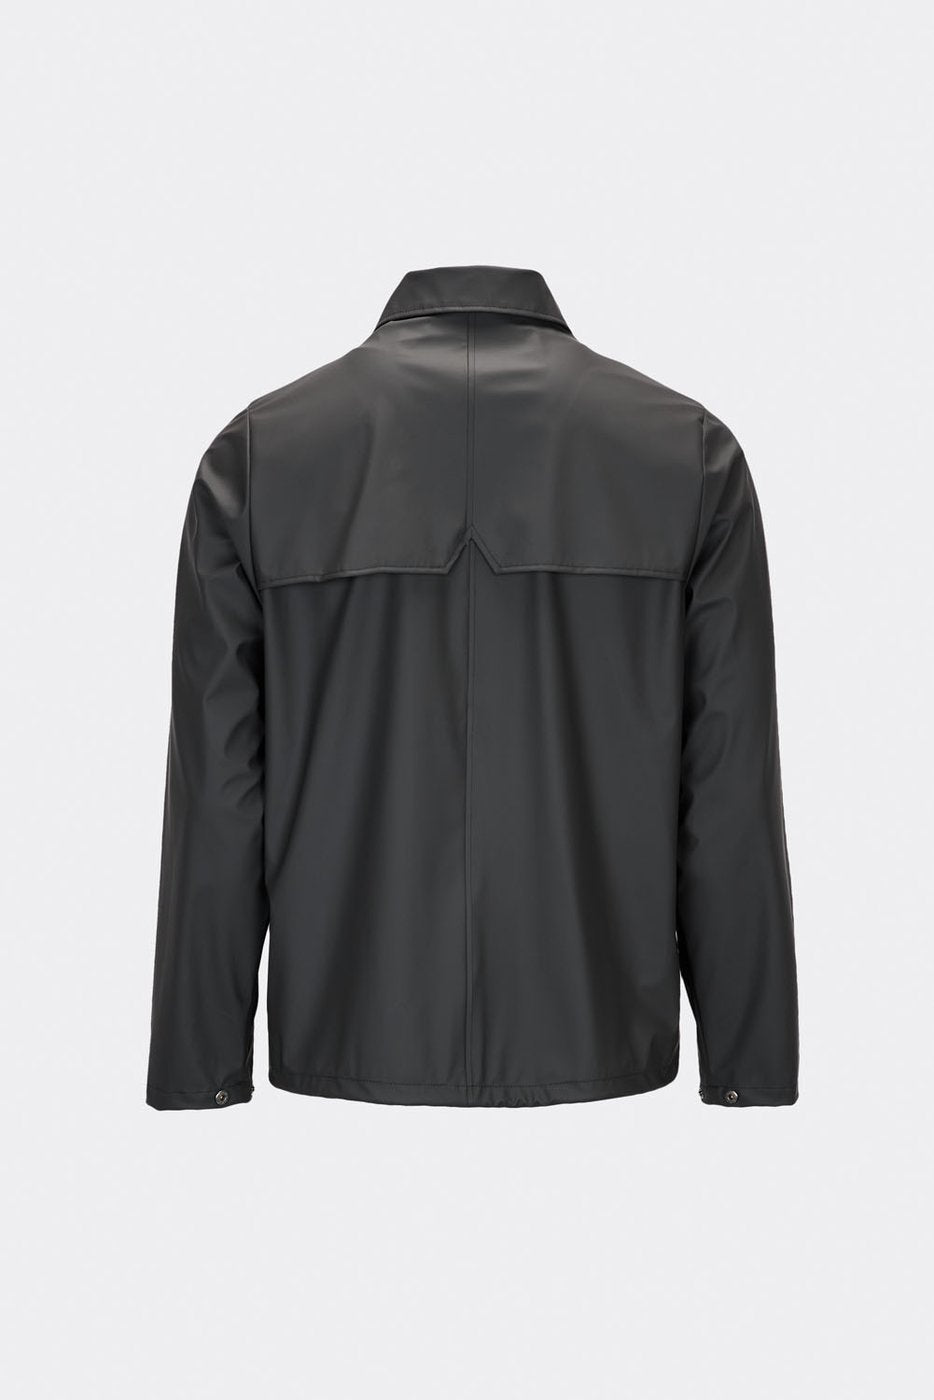 Rains - Coach Jacket Black